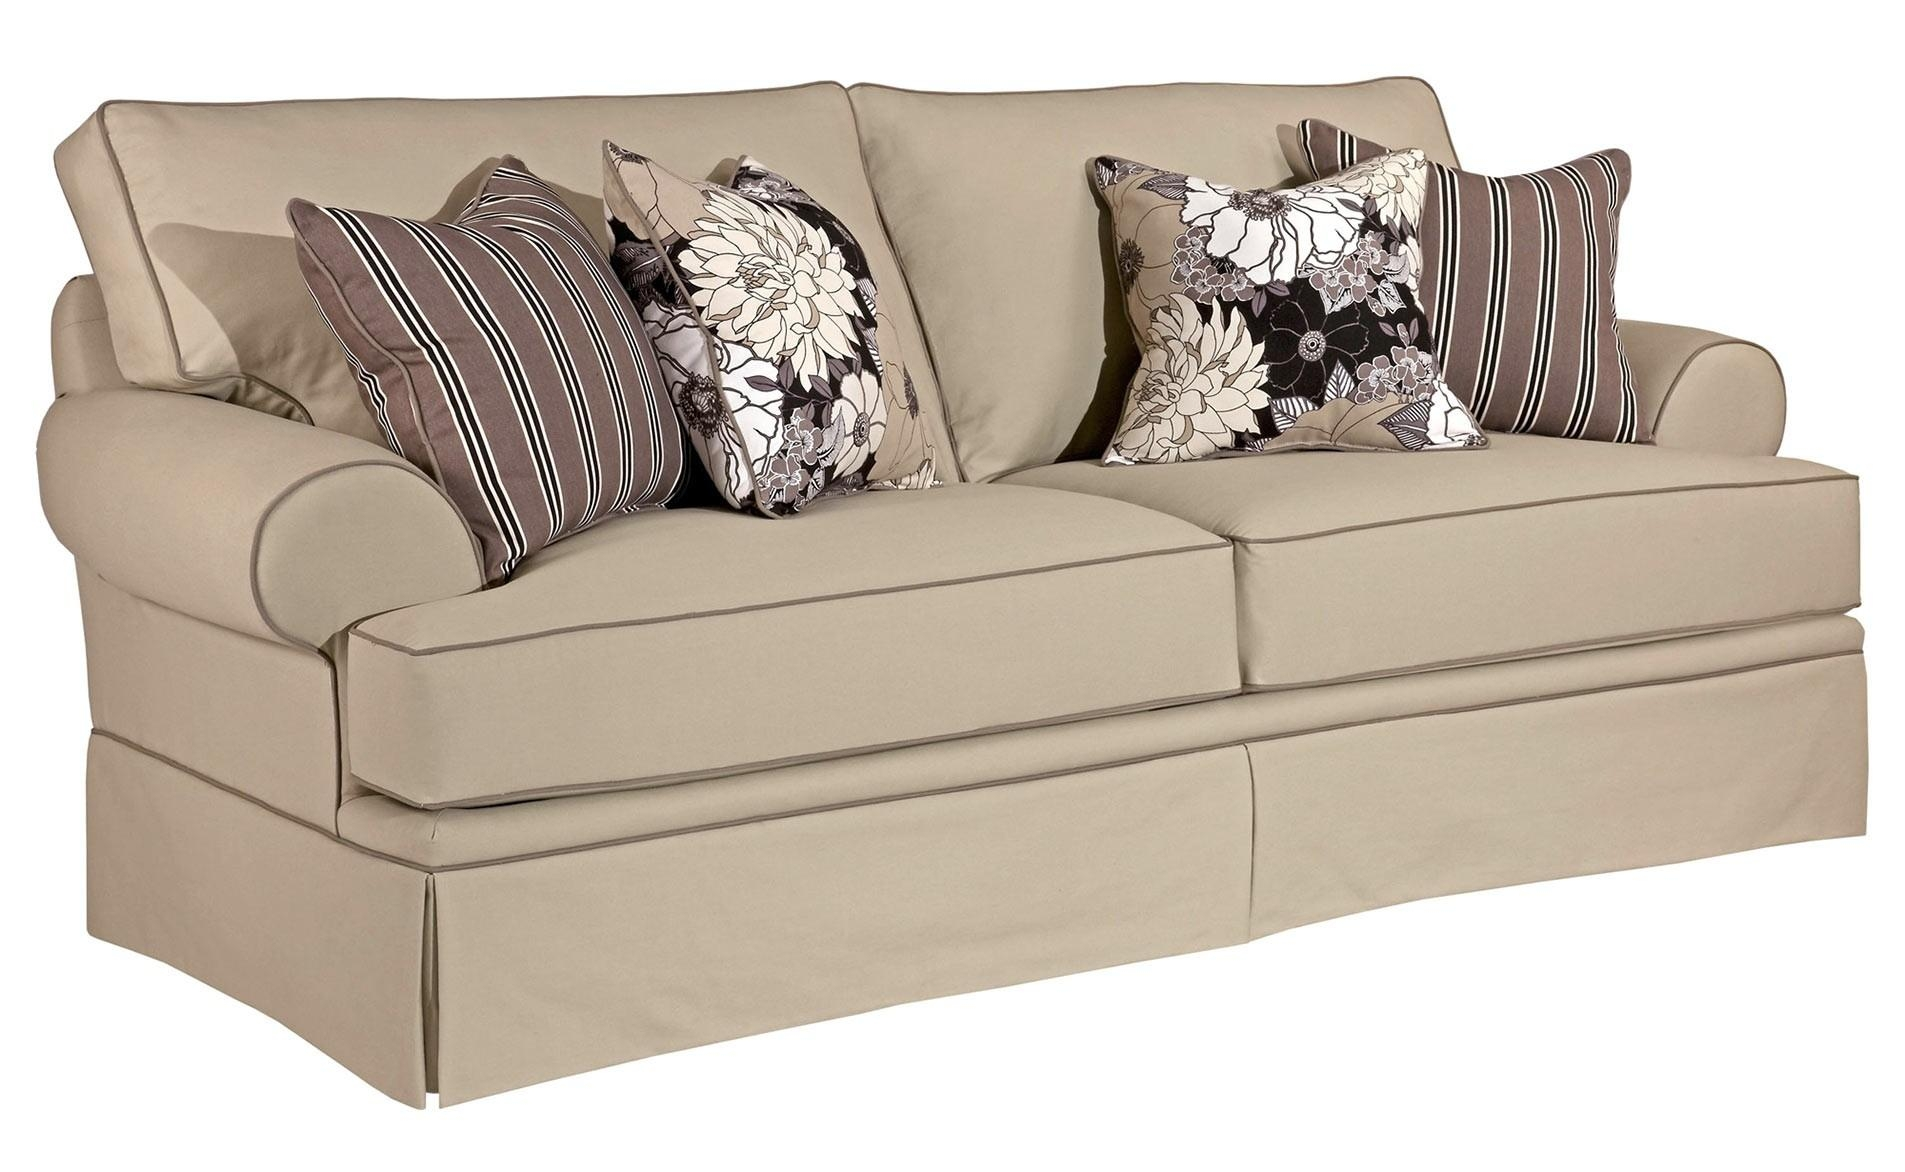 Cindy Crawford Sleeper Sofa ~ Hmmi Within Cindy Crawford Sleeper Sofas (Image 10 of 20)